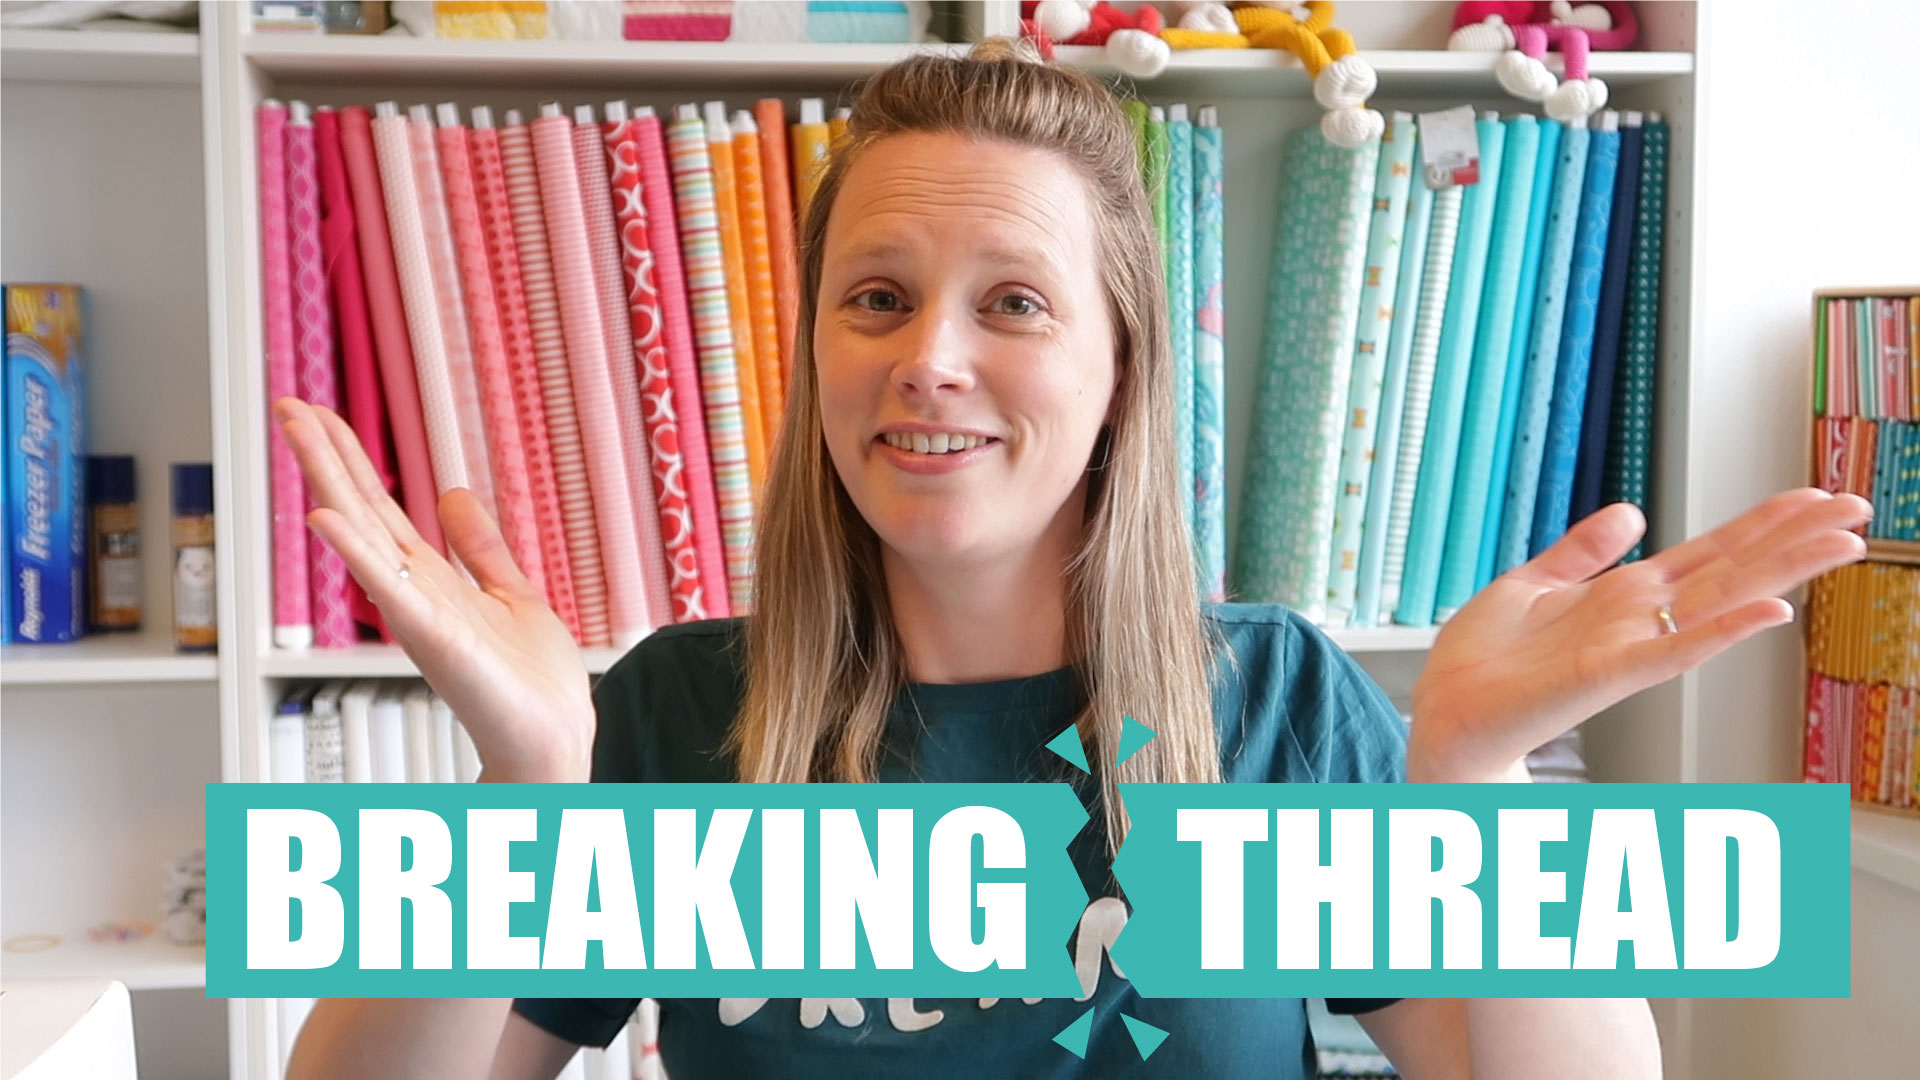 Help! Thread breaking while quilting